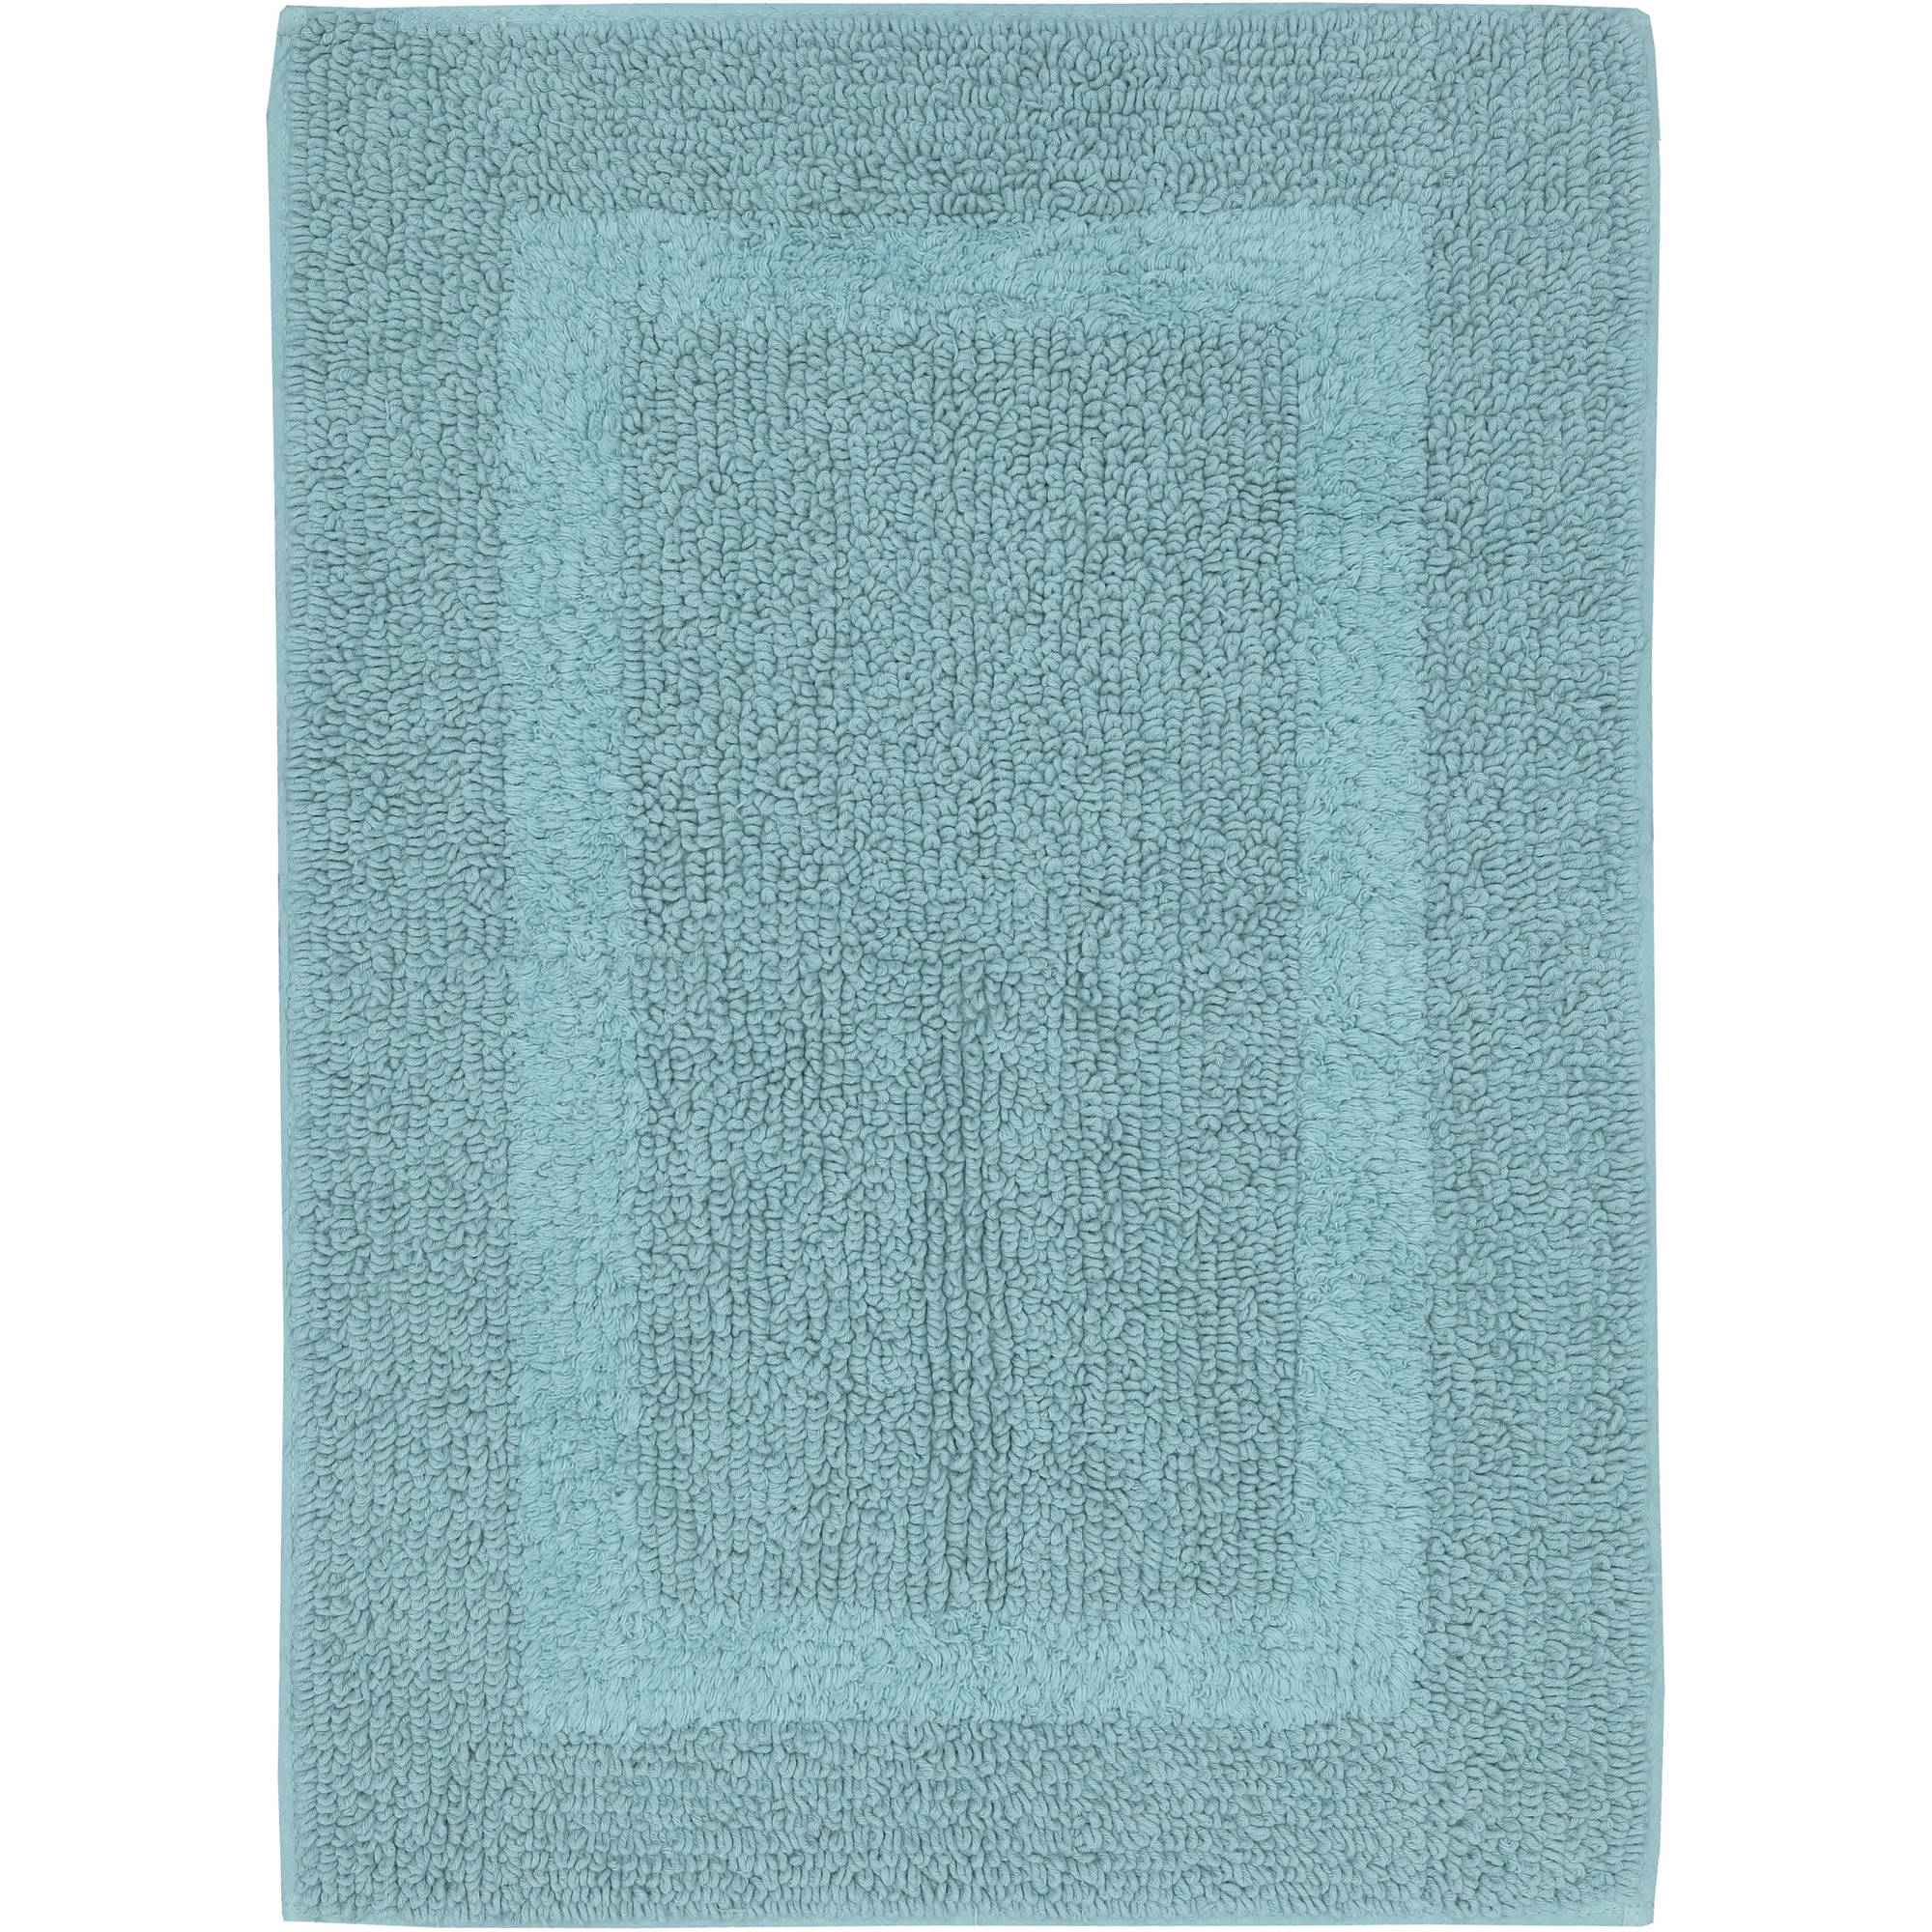 Permalink to Aqua Colored Bathroom Rugs